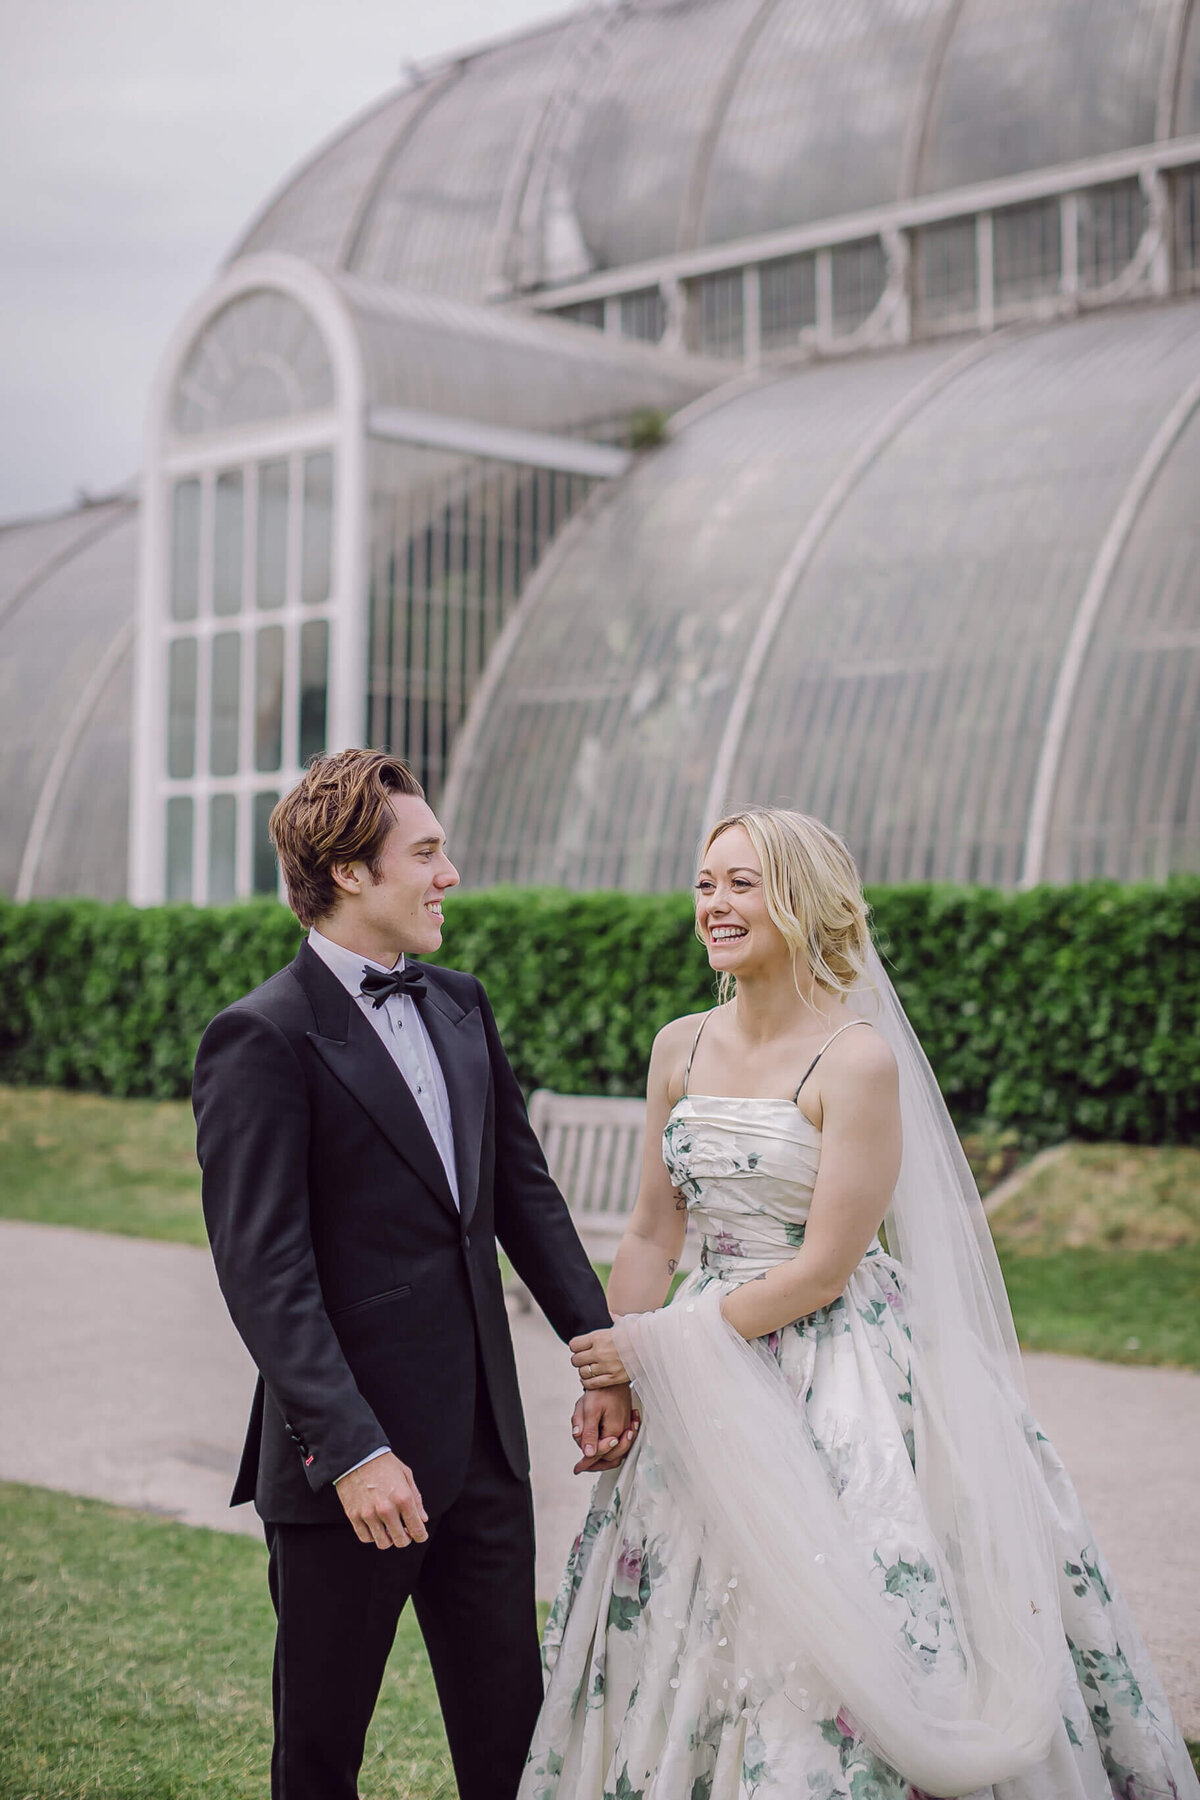 Ellie&Seb, July 06, 2019, 565